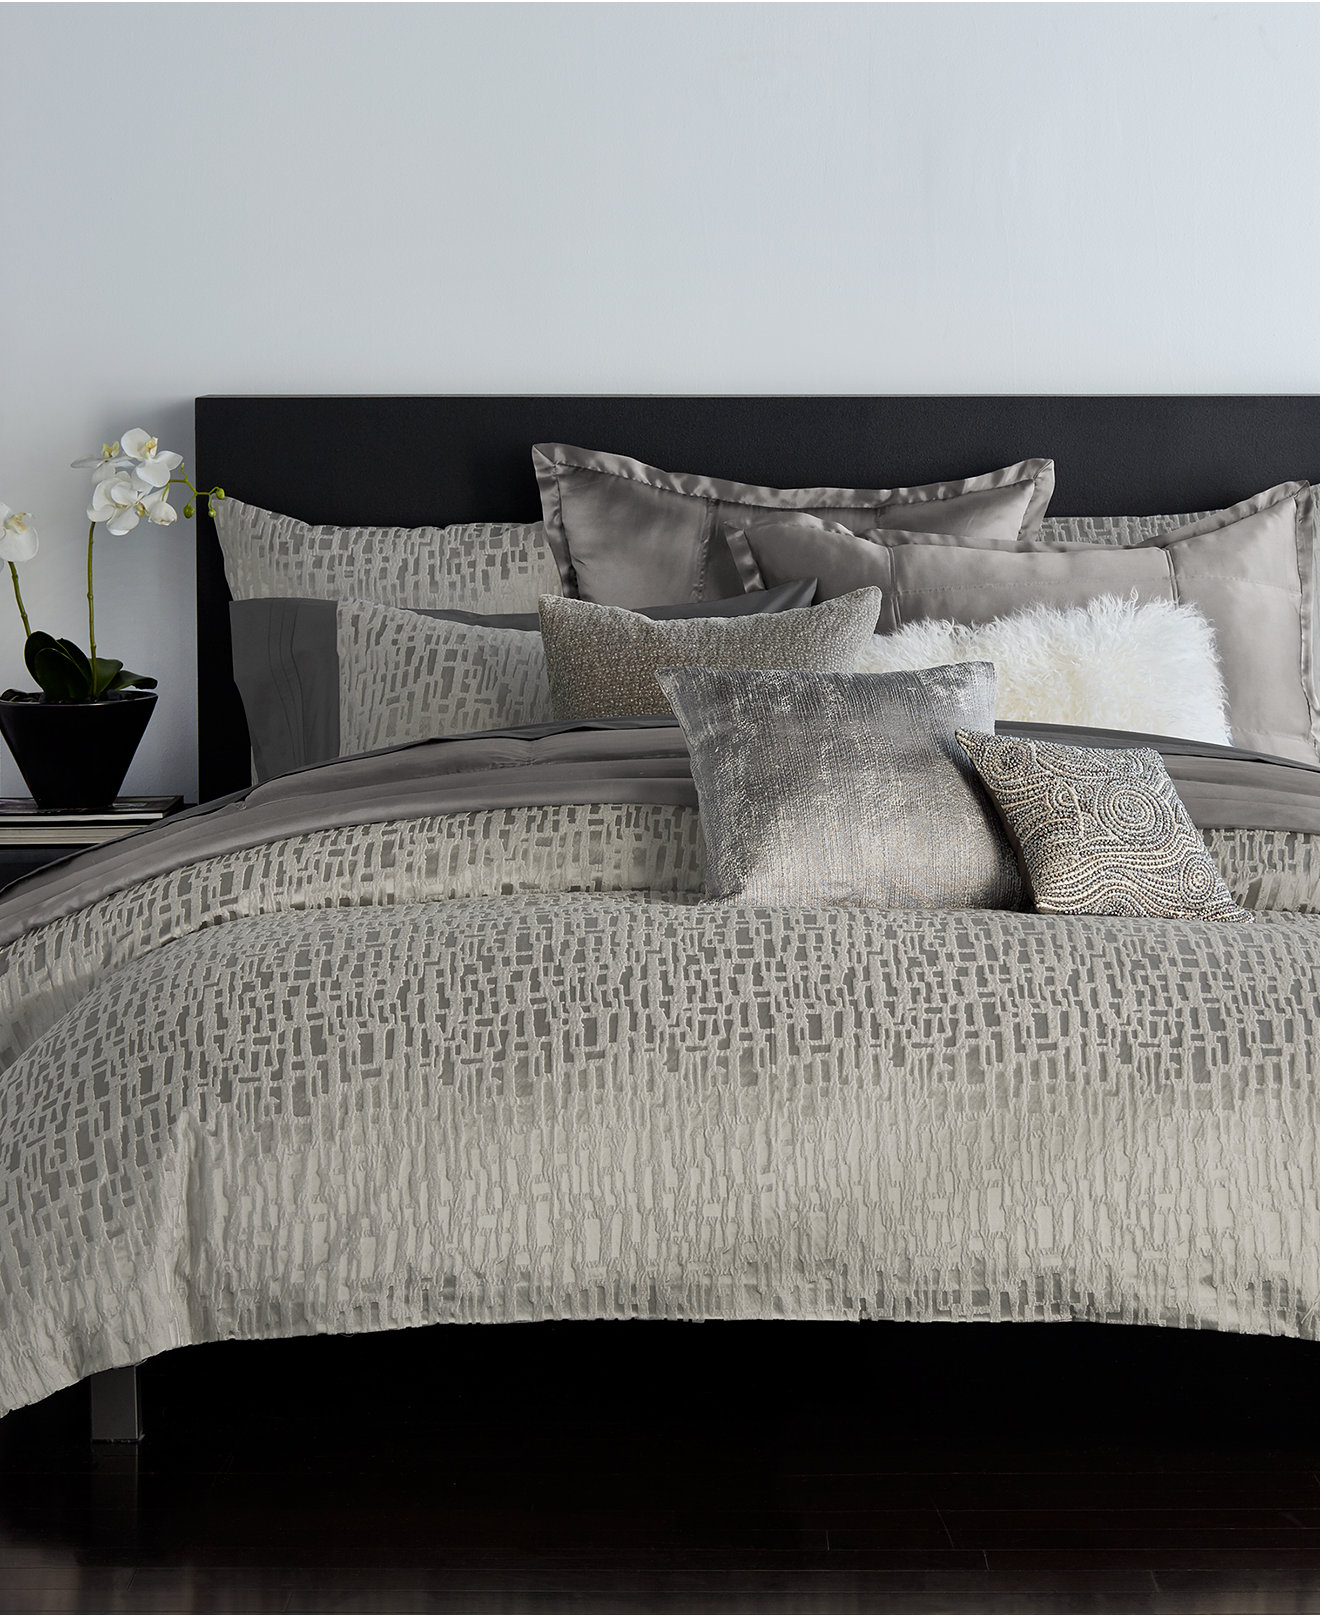 Comfy donna karan bedding with Cushion and pillows also beautiful duvet cover and sidetable and luxury wall paint color